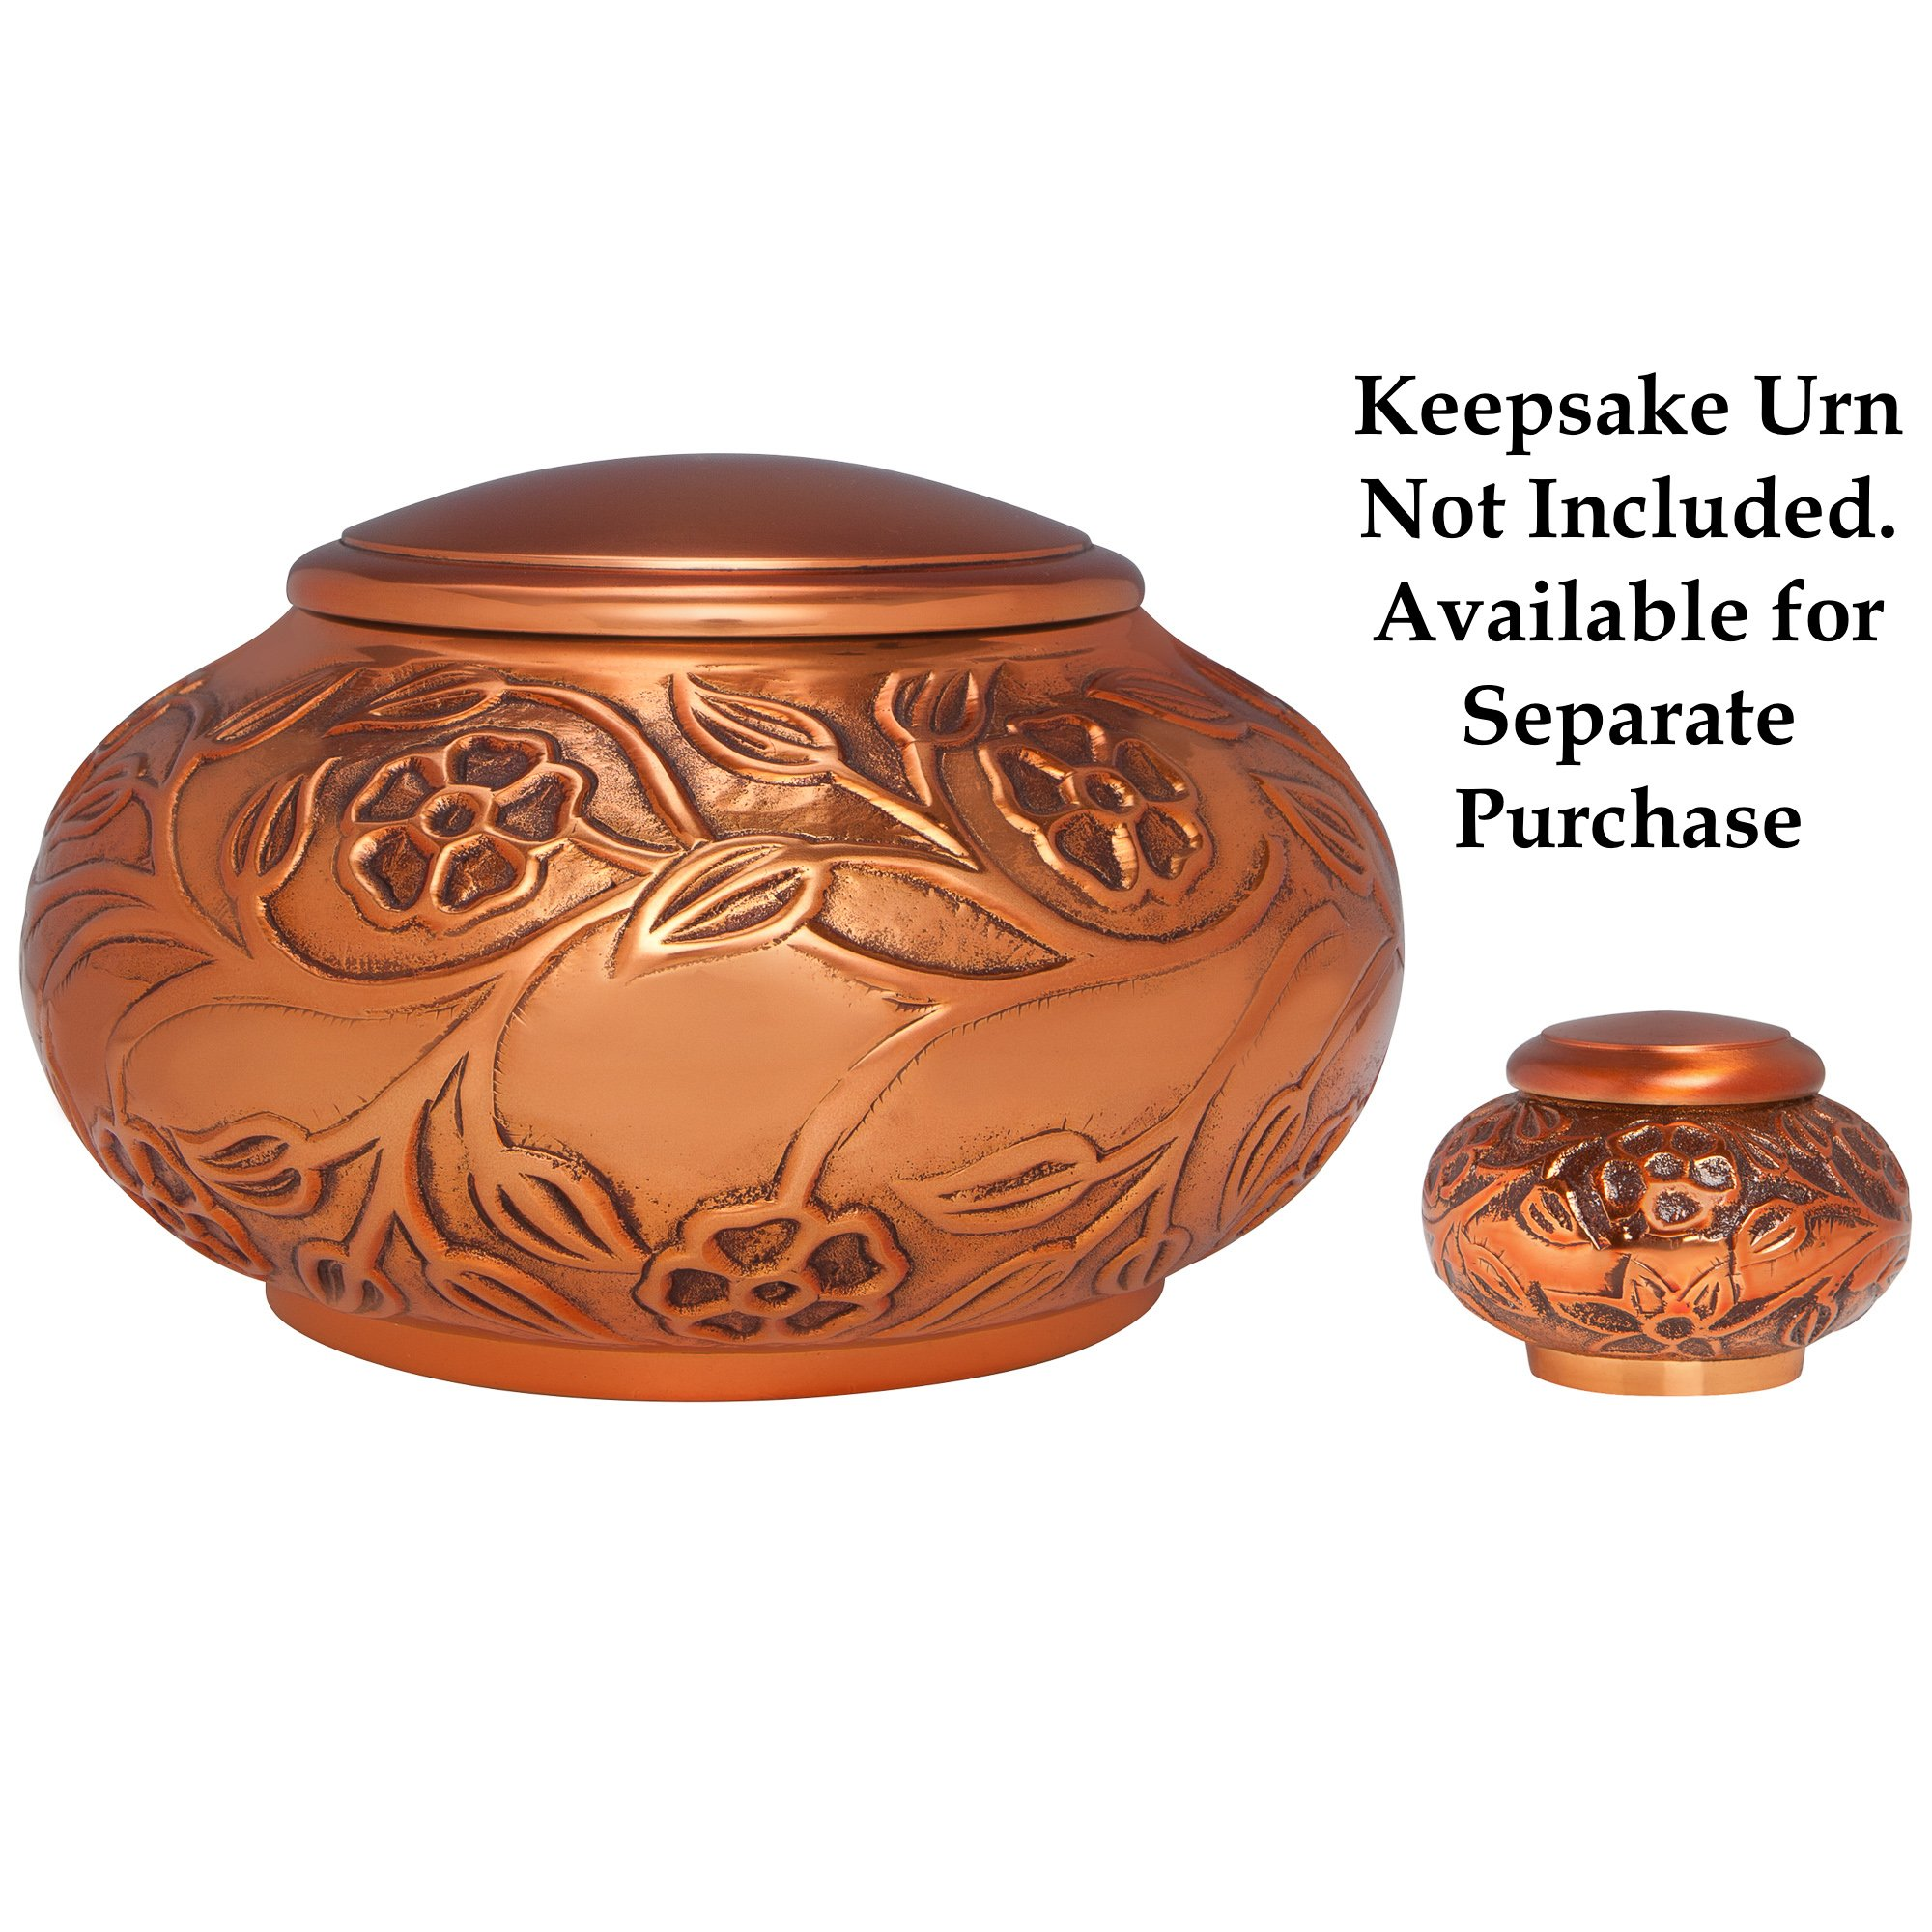 Copper Funeral Urn by Liliane Memorials - Cremation Urn for Human Ashes - Hand Made in Brass - Suitable for Cemetery Burial or Niche - Large Size fits remains of Adults up to 70 lbs by Liliane Memorials (Image #6)